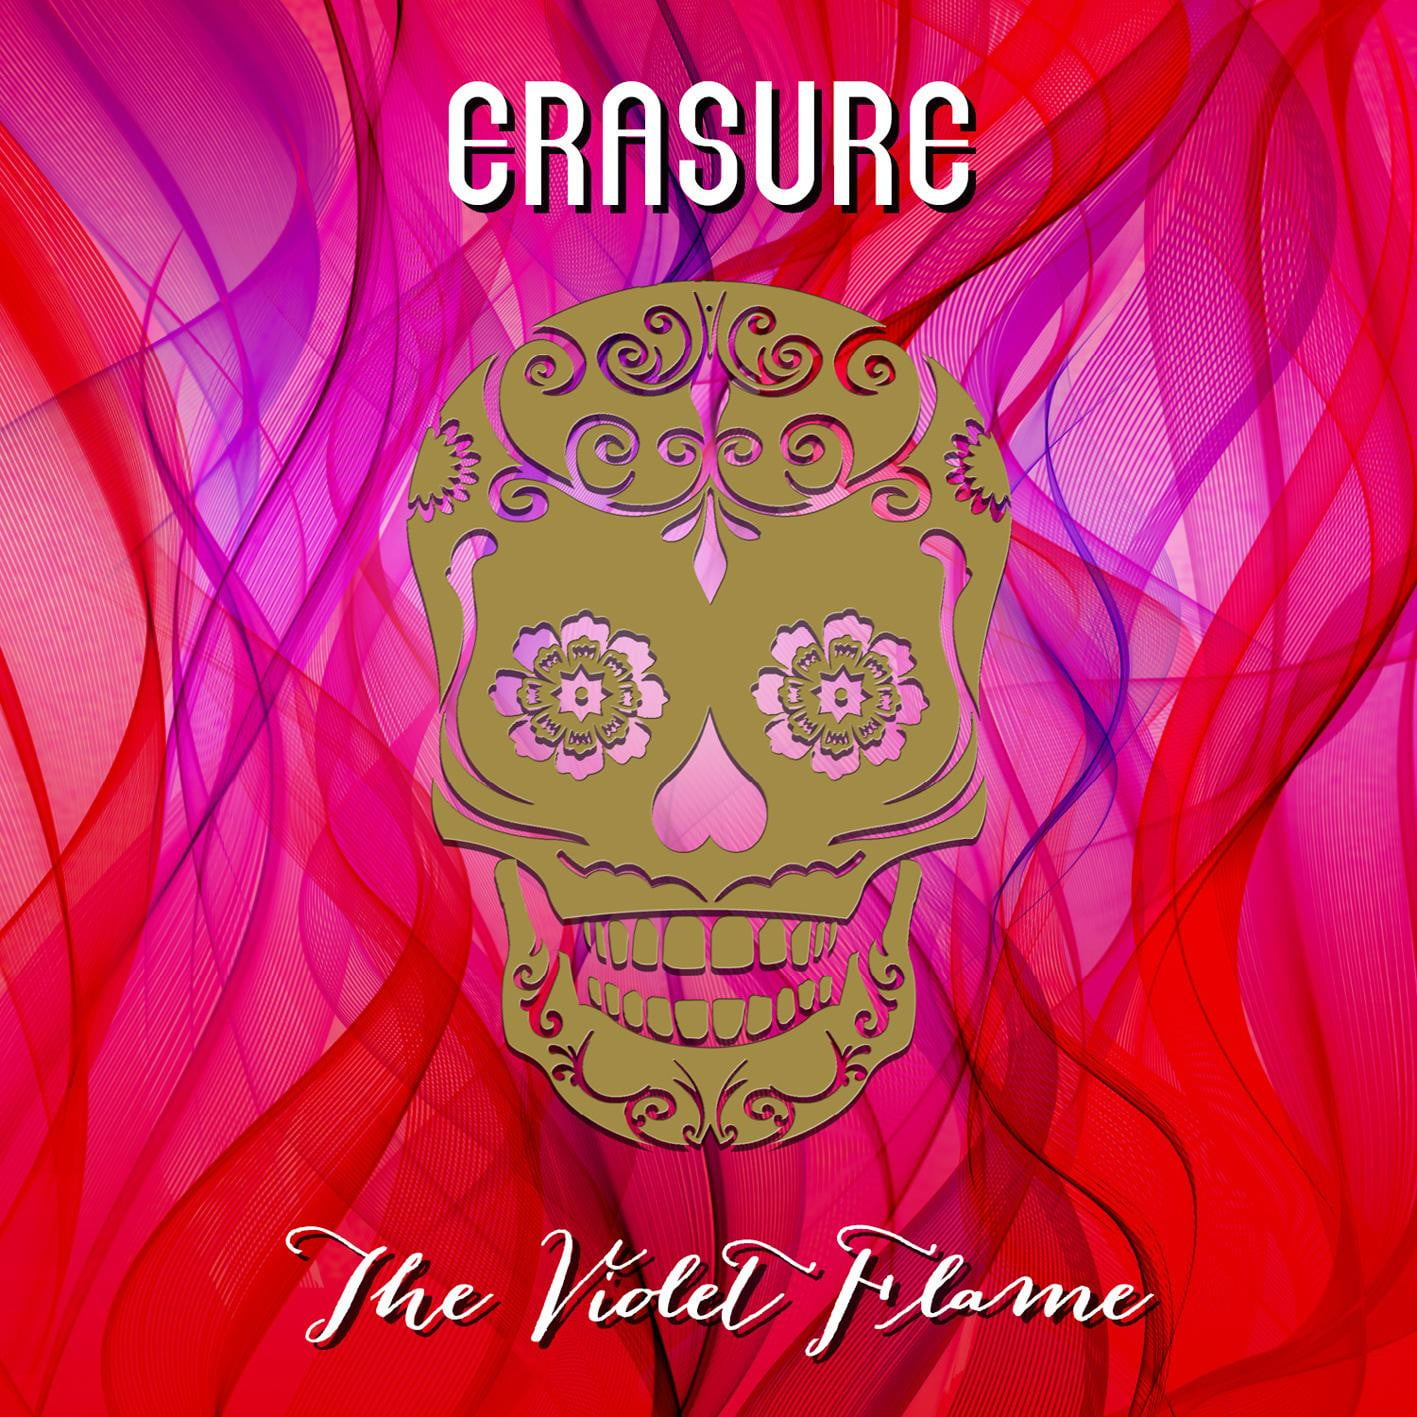 ERASURE-_-THE-VIOLET-FLAME-_-COVER-ART